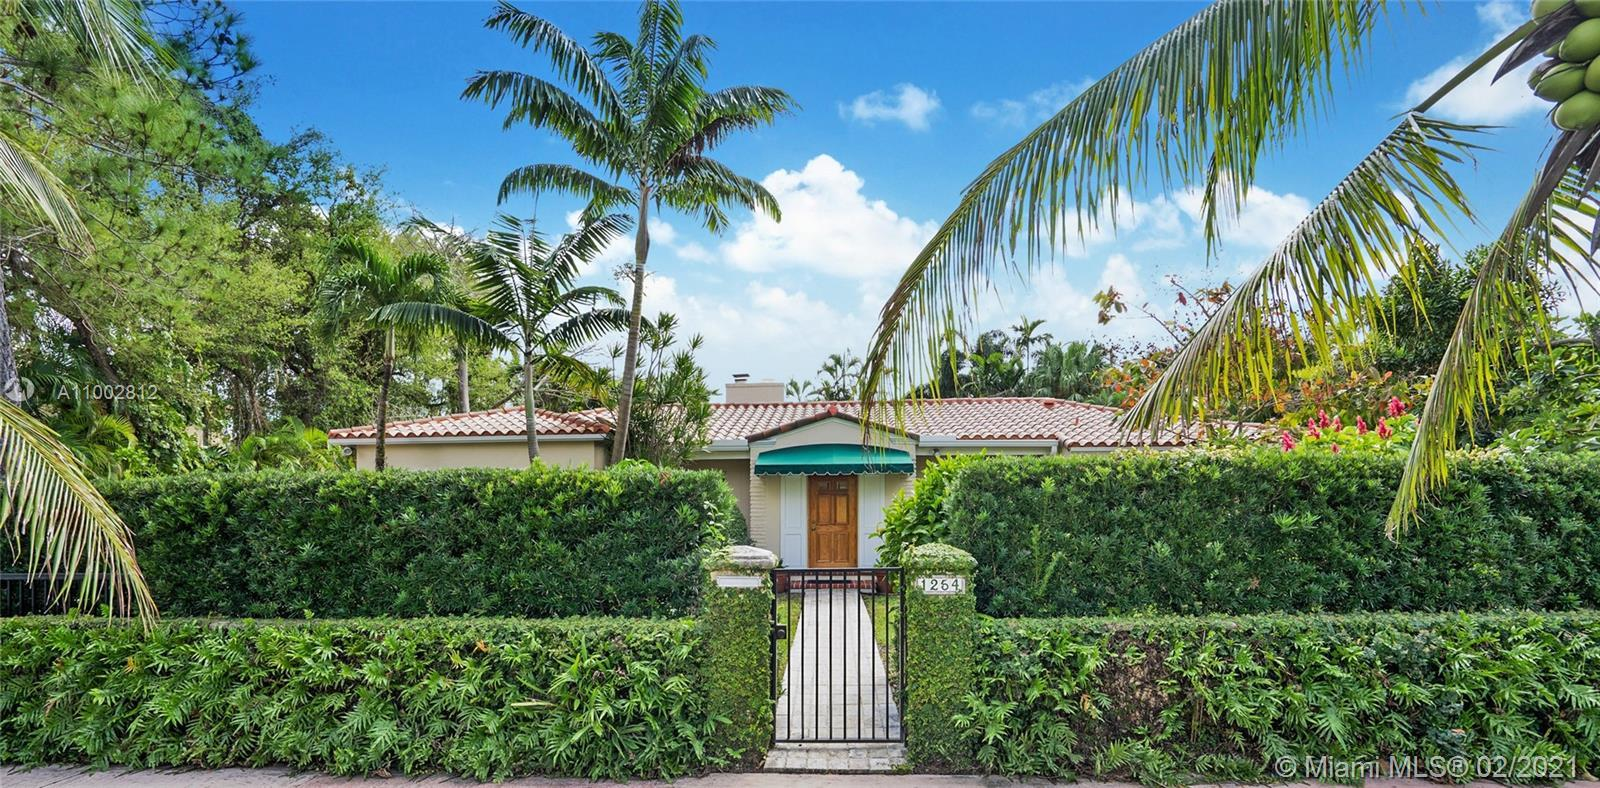 Located in a Prime Coral Gables location, behind a privacy wall, this 4 bd, 3 bath residence w/ cott